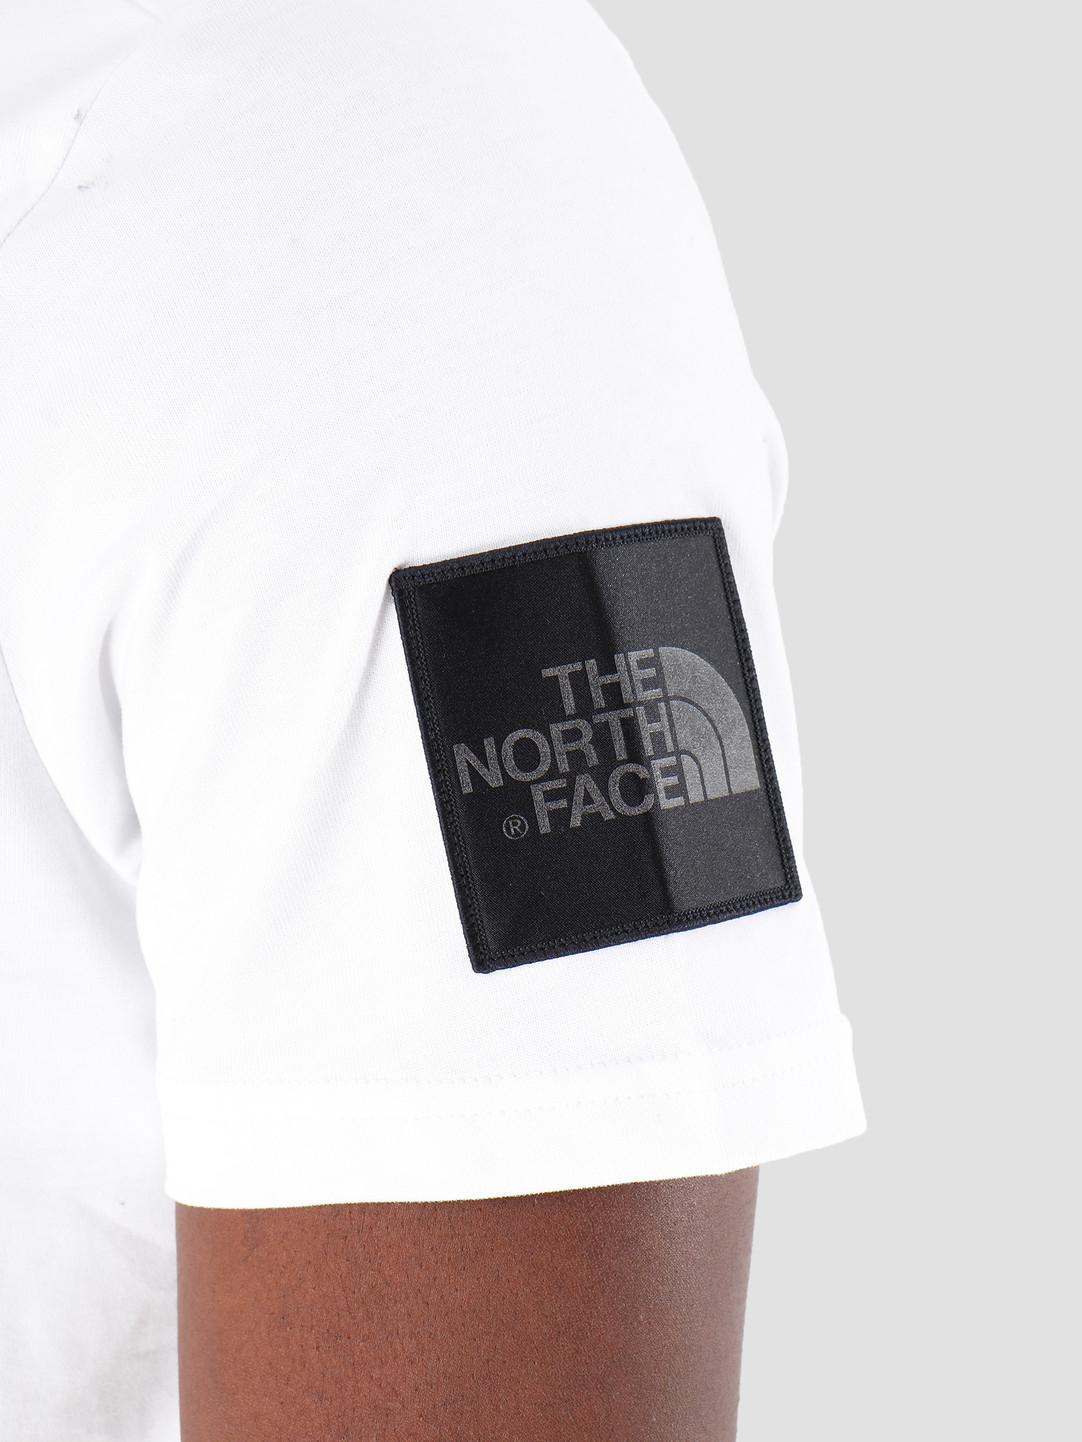 The North Face The North Face T-Shirt Fine 2 Black White Reflective T93YHCFV3